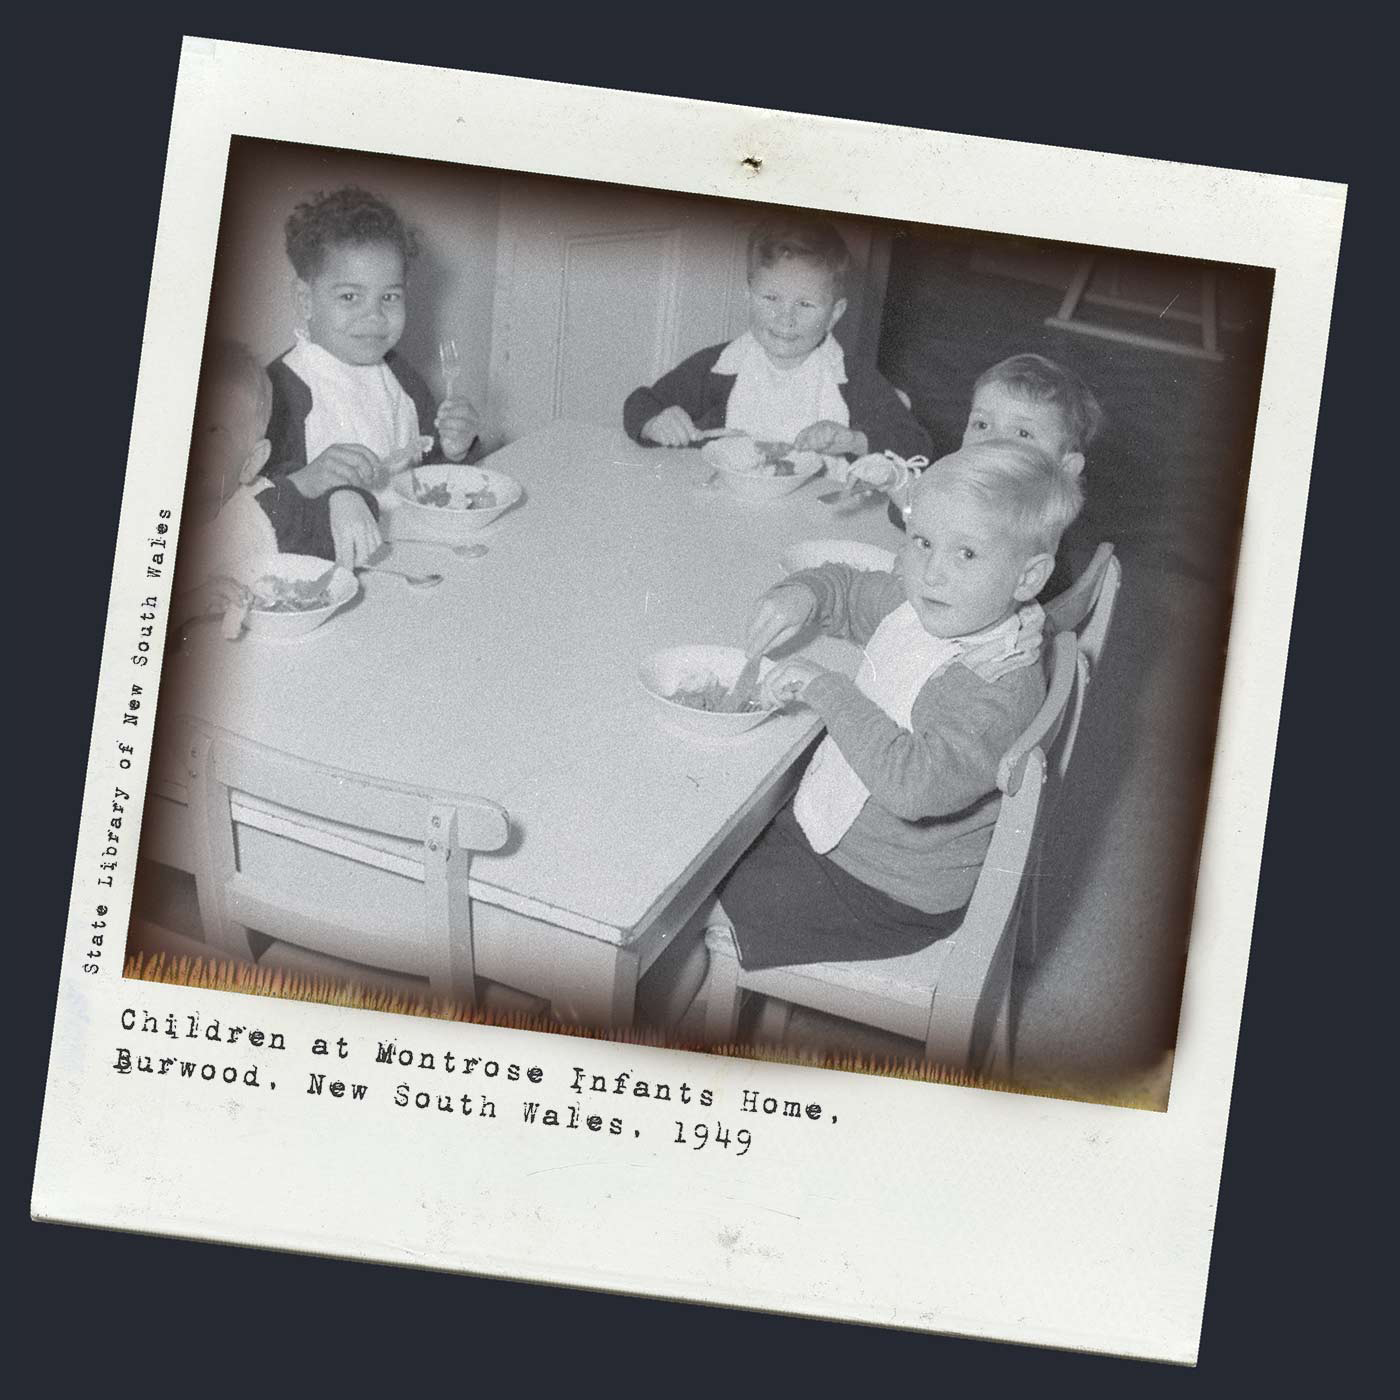 Black and white Polaroid photo showing five toddlers sitting at a small, wooden rectangular table. Each of the children wears a white bib and eats from a small bowl. Another child sits in a high chair, visible through a doorway at the far end of the shot. Typeritten text under the photo reads: 'Children at Montrose Infants Home, Burwood, 1949', and along the left side reads 'State Library of New South Wales'. - click to view larger image